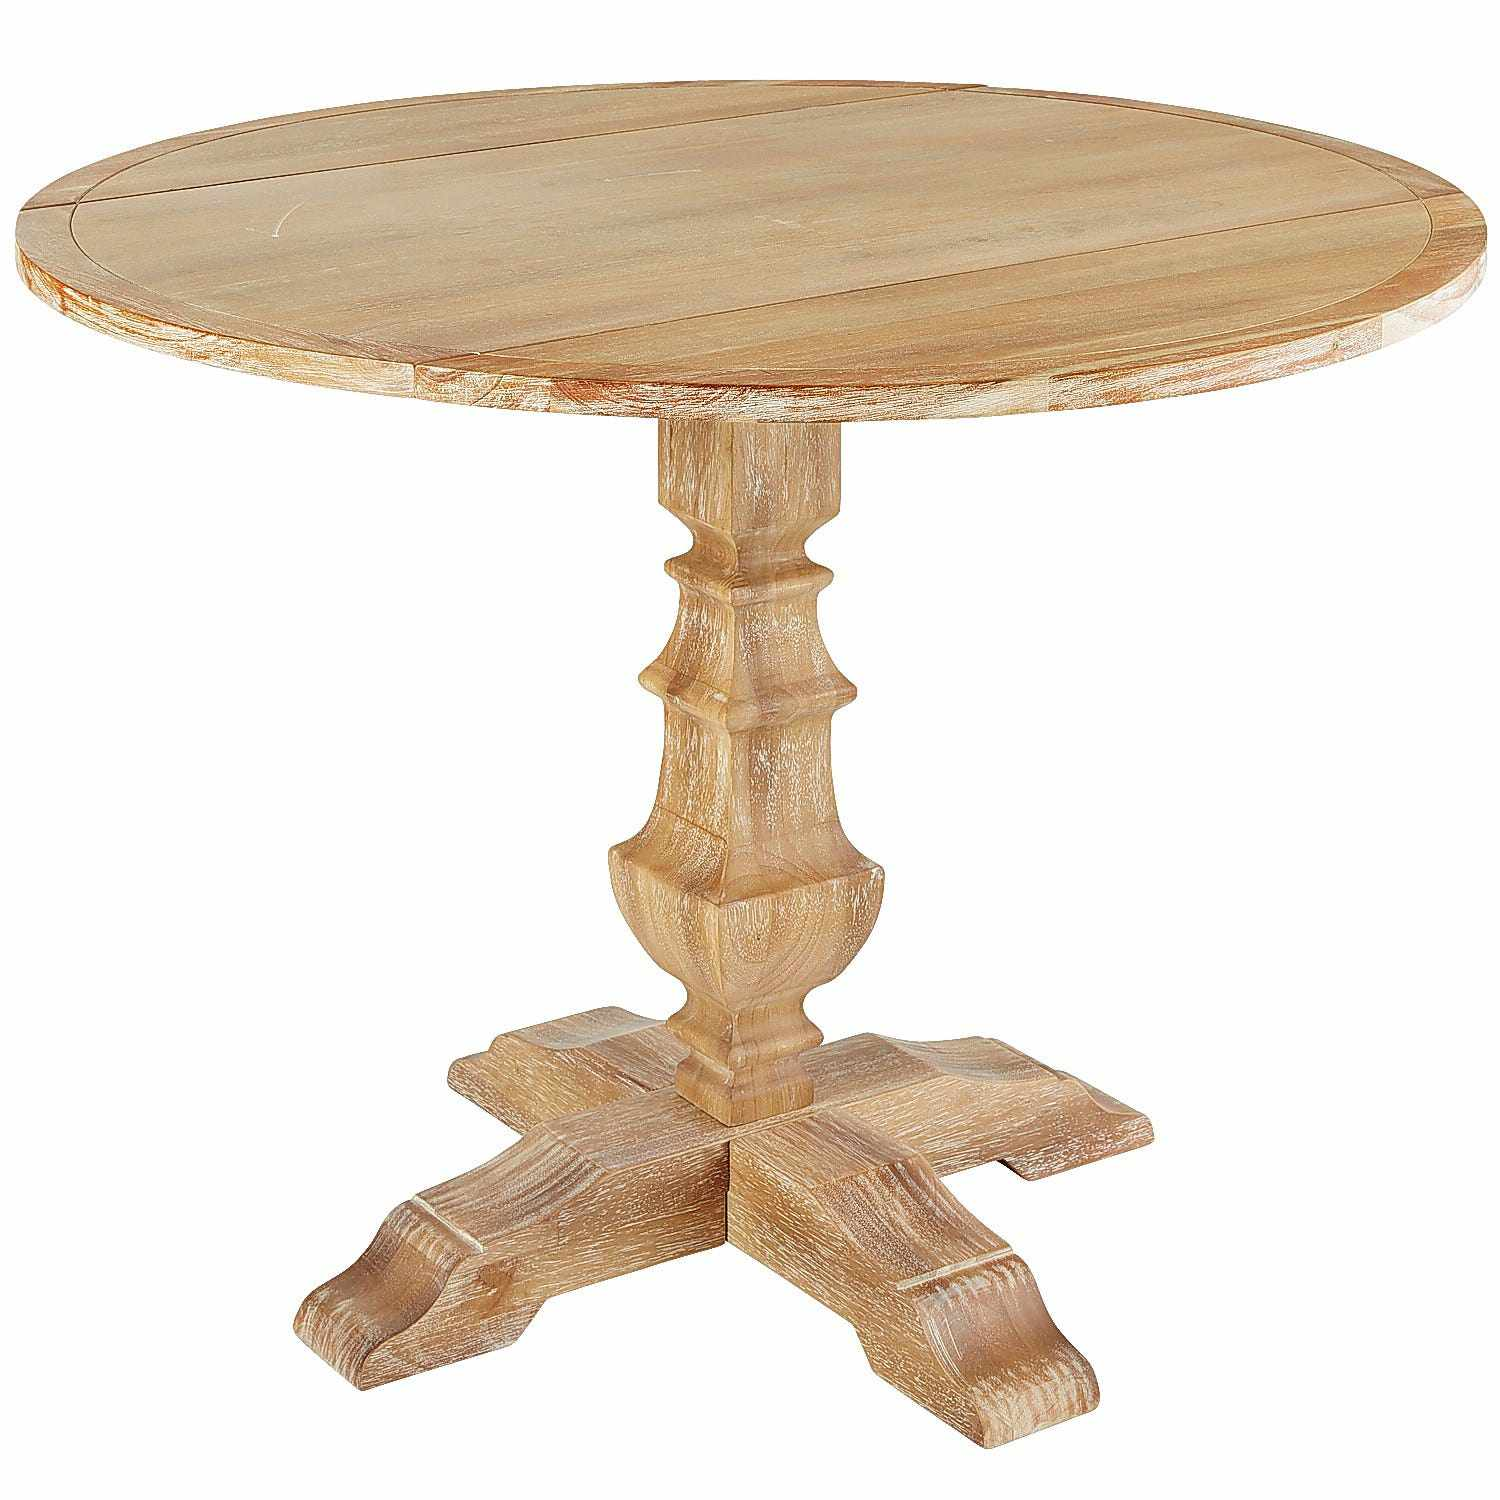 A round wood drop-leaf dining table with a carved, urn-style base and four splayed legs.